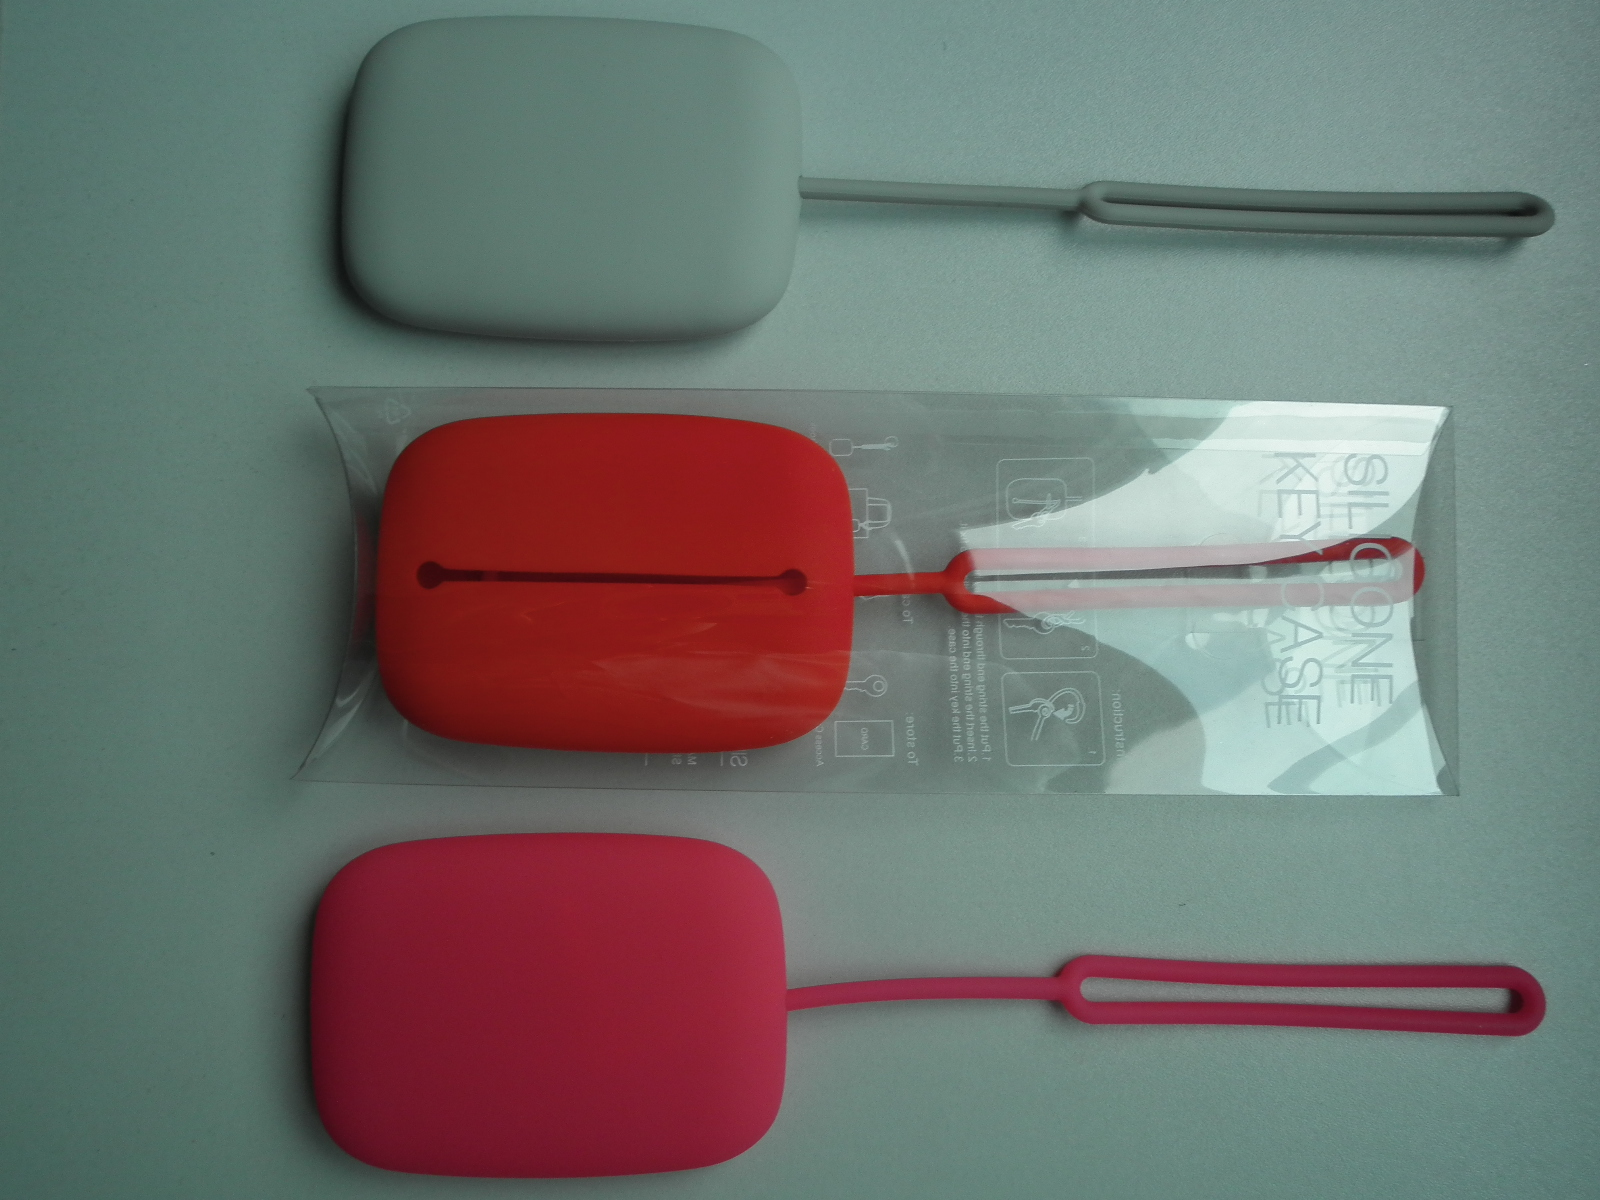 http://www.refinehksilicone.cn/data/images/product/20180418101641_229.JPG